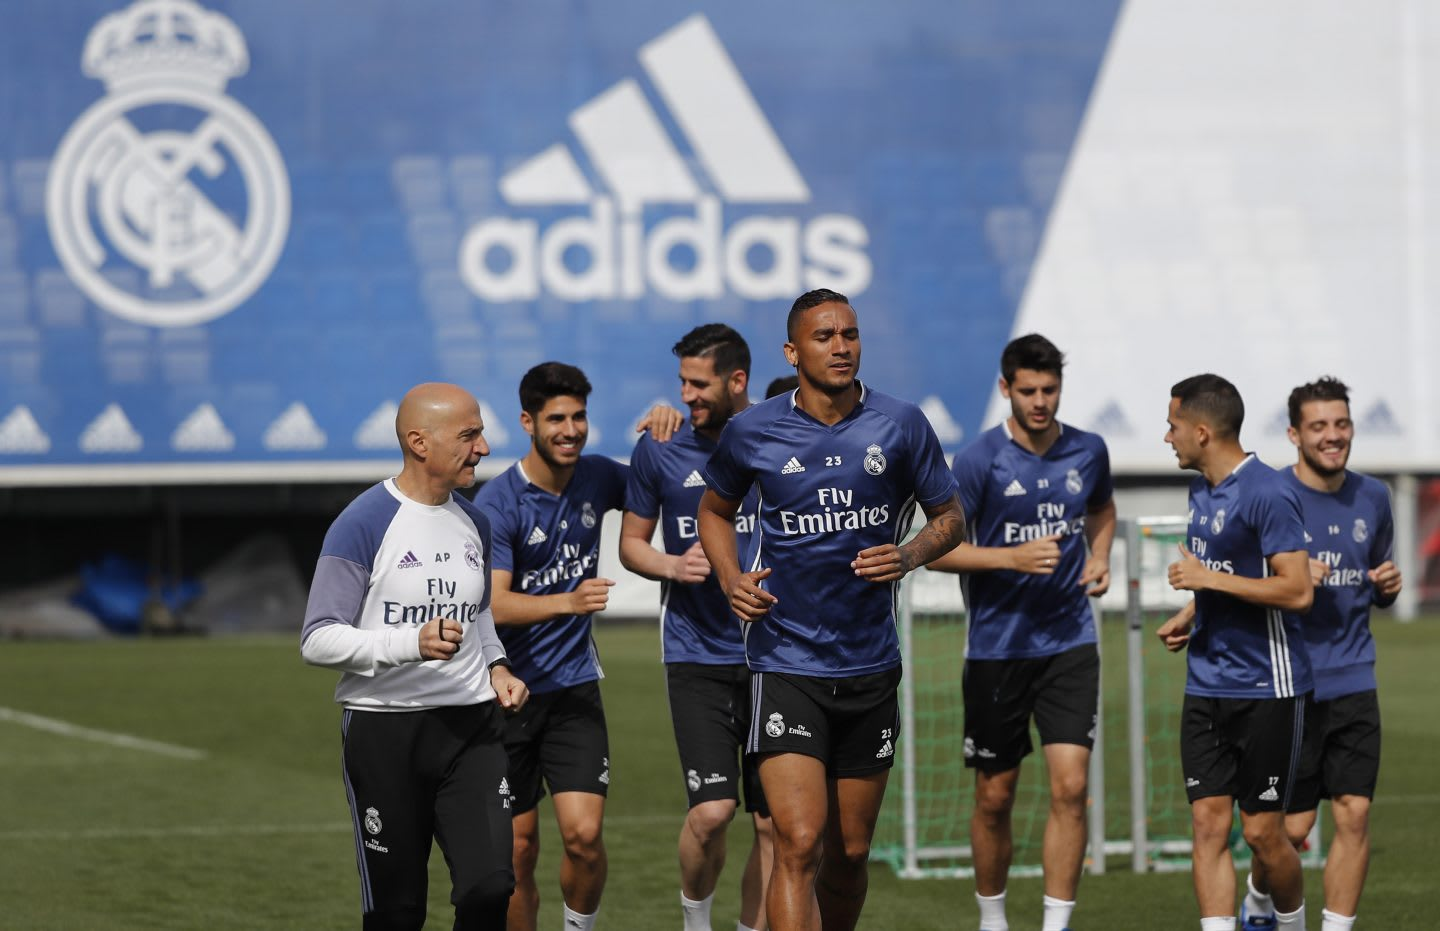 adidas-Real-Madrid-miCoach-football-fitness-training-Antonio-Pintus